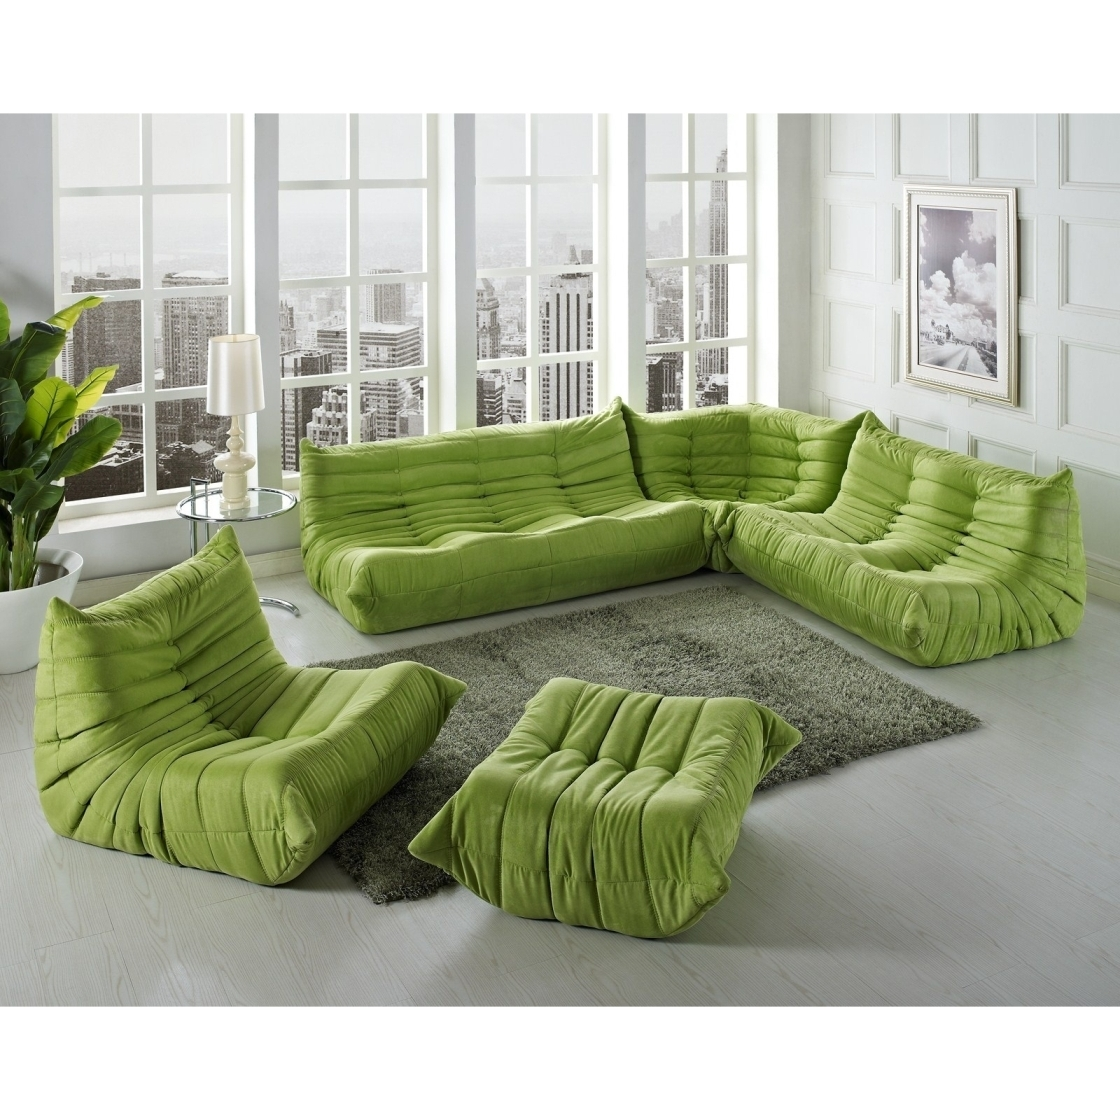 Modular Leather Sectional Sofa – Leather Sectional Sofa Intended For Leather Modular Sectional Sofas (Image 13 of 20)